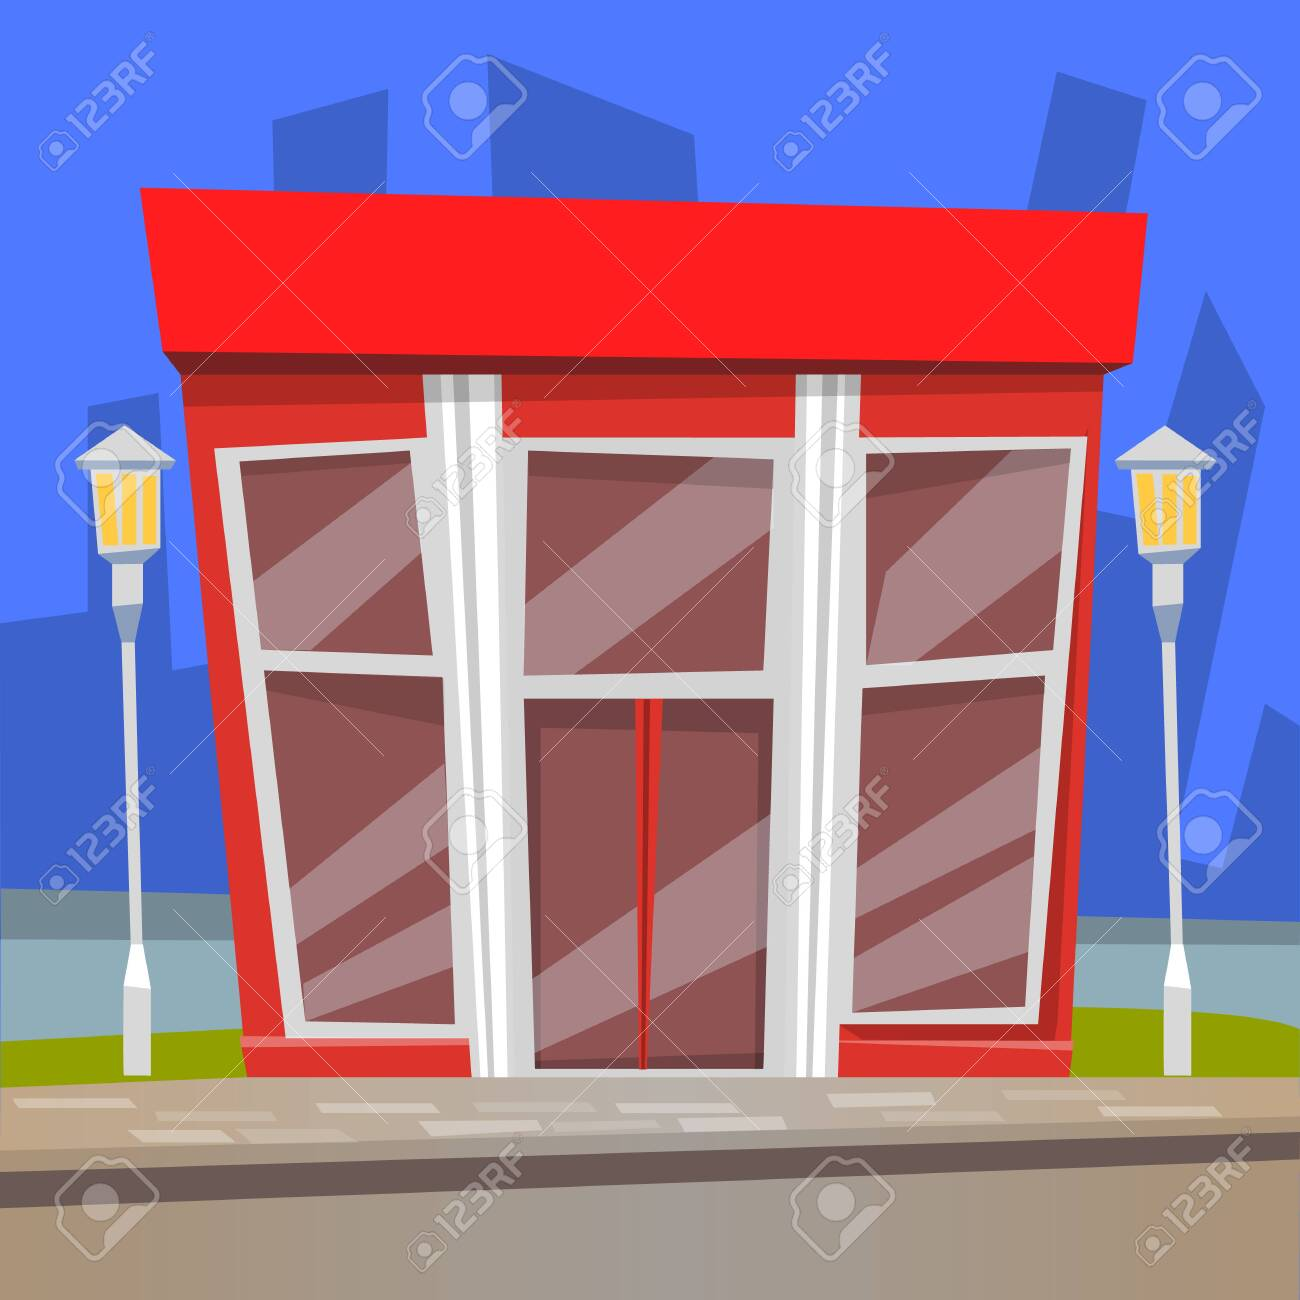 Cafe With Panoramic Windows In Red Color Restaurant Construction Royalty Free Cliparts Vectors And Stock Illustration Image 134307102